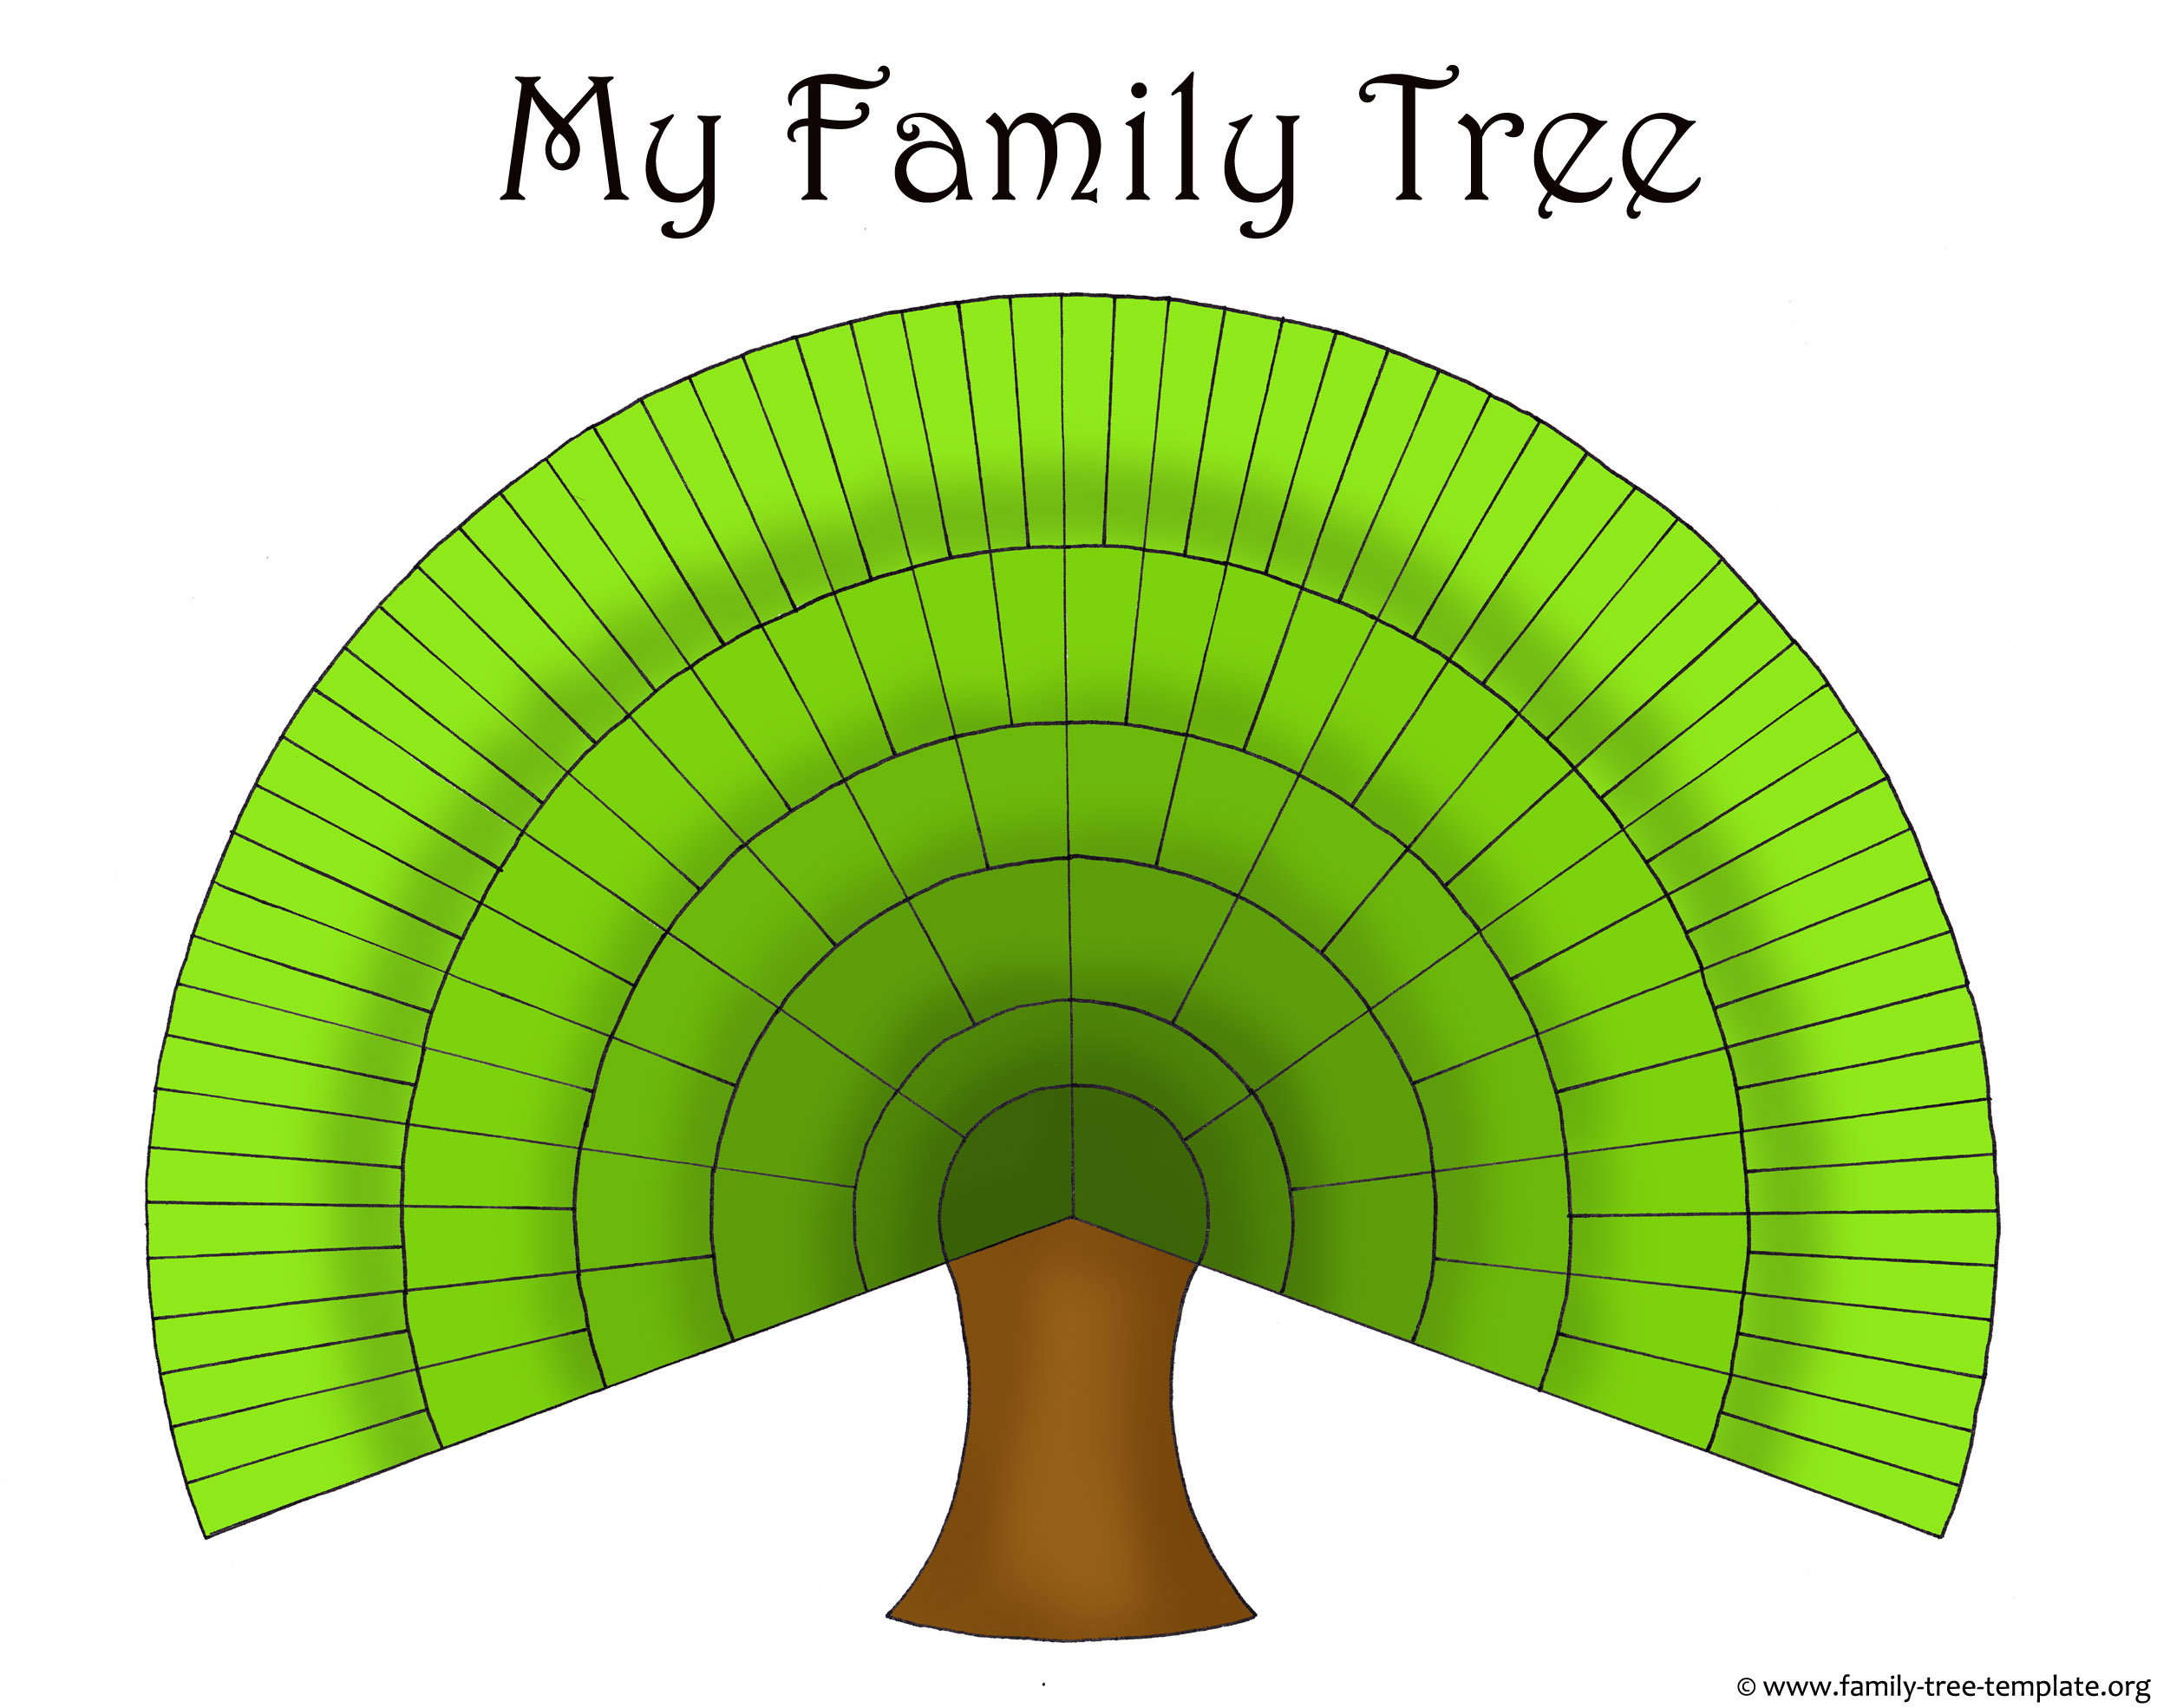 Blank Family Trees Templates – Using Genealogy Graphics to Make ...